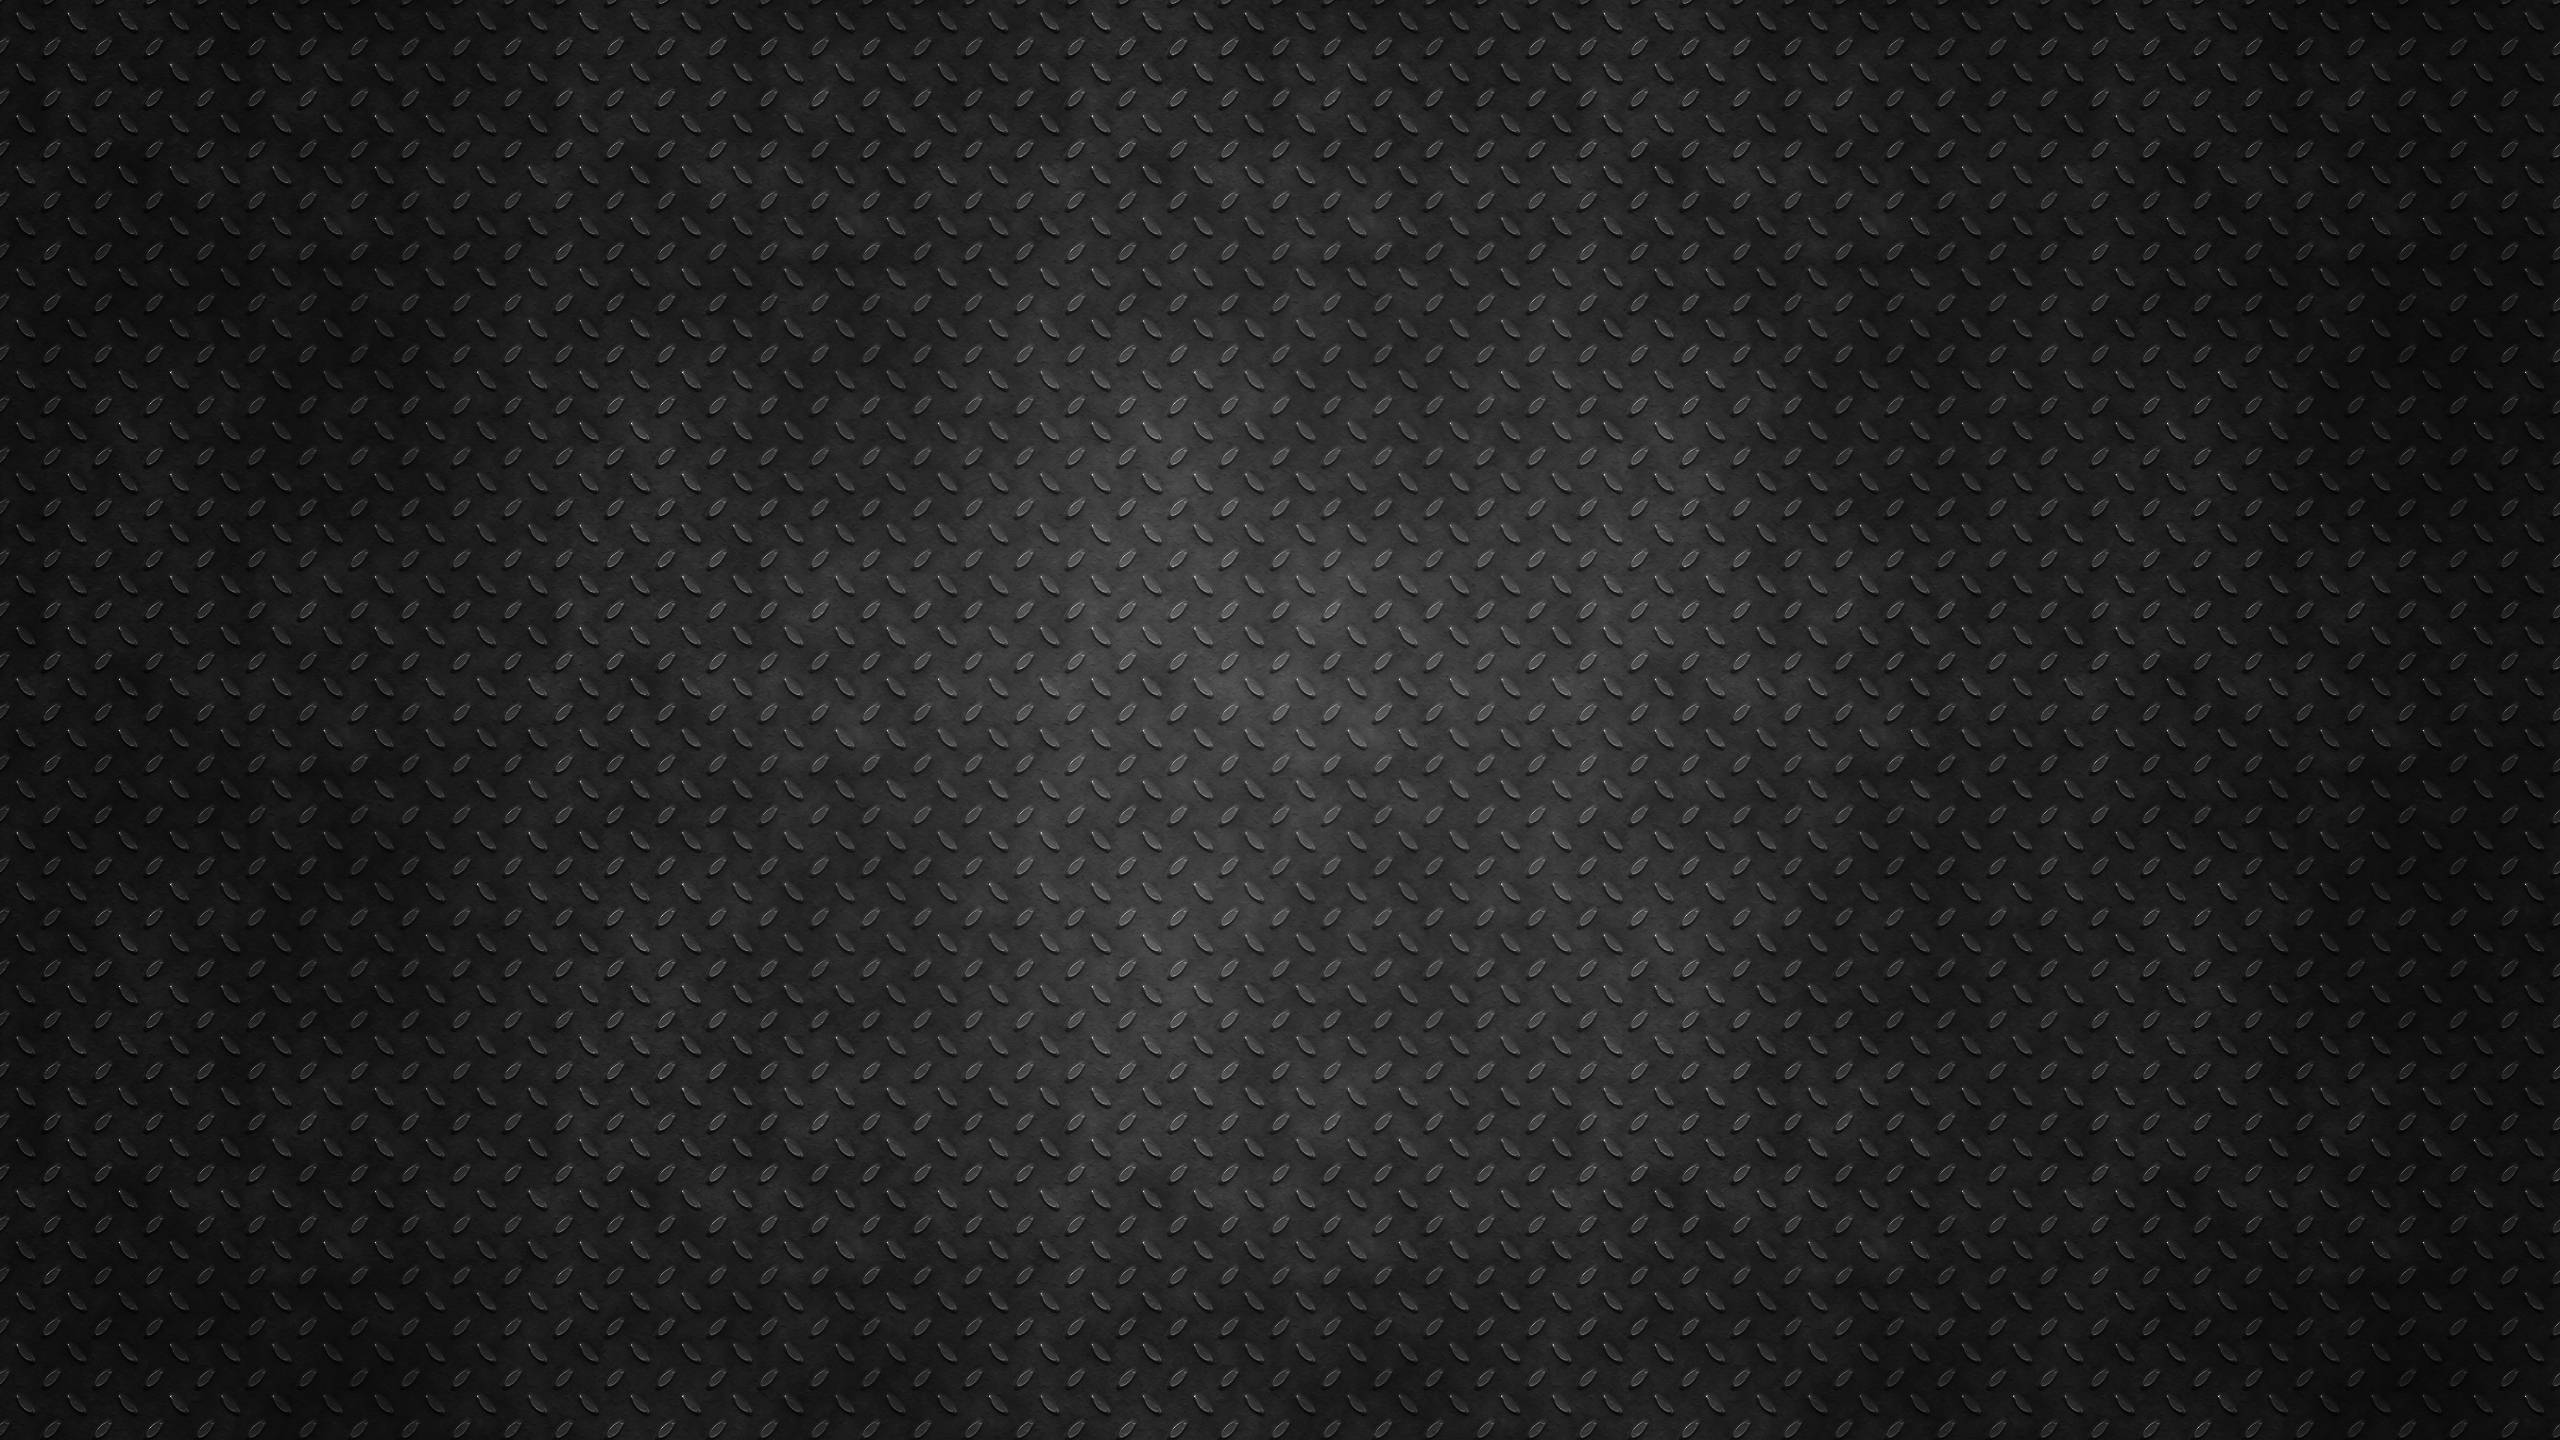 black texture wallpapers 3856 - photo #9